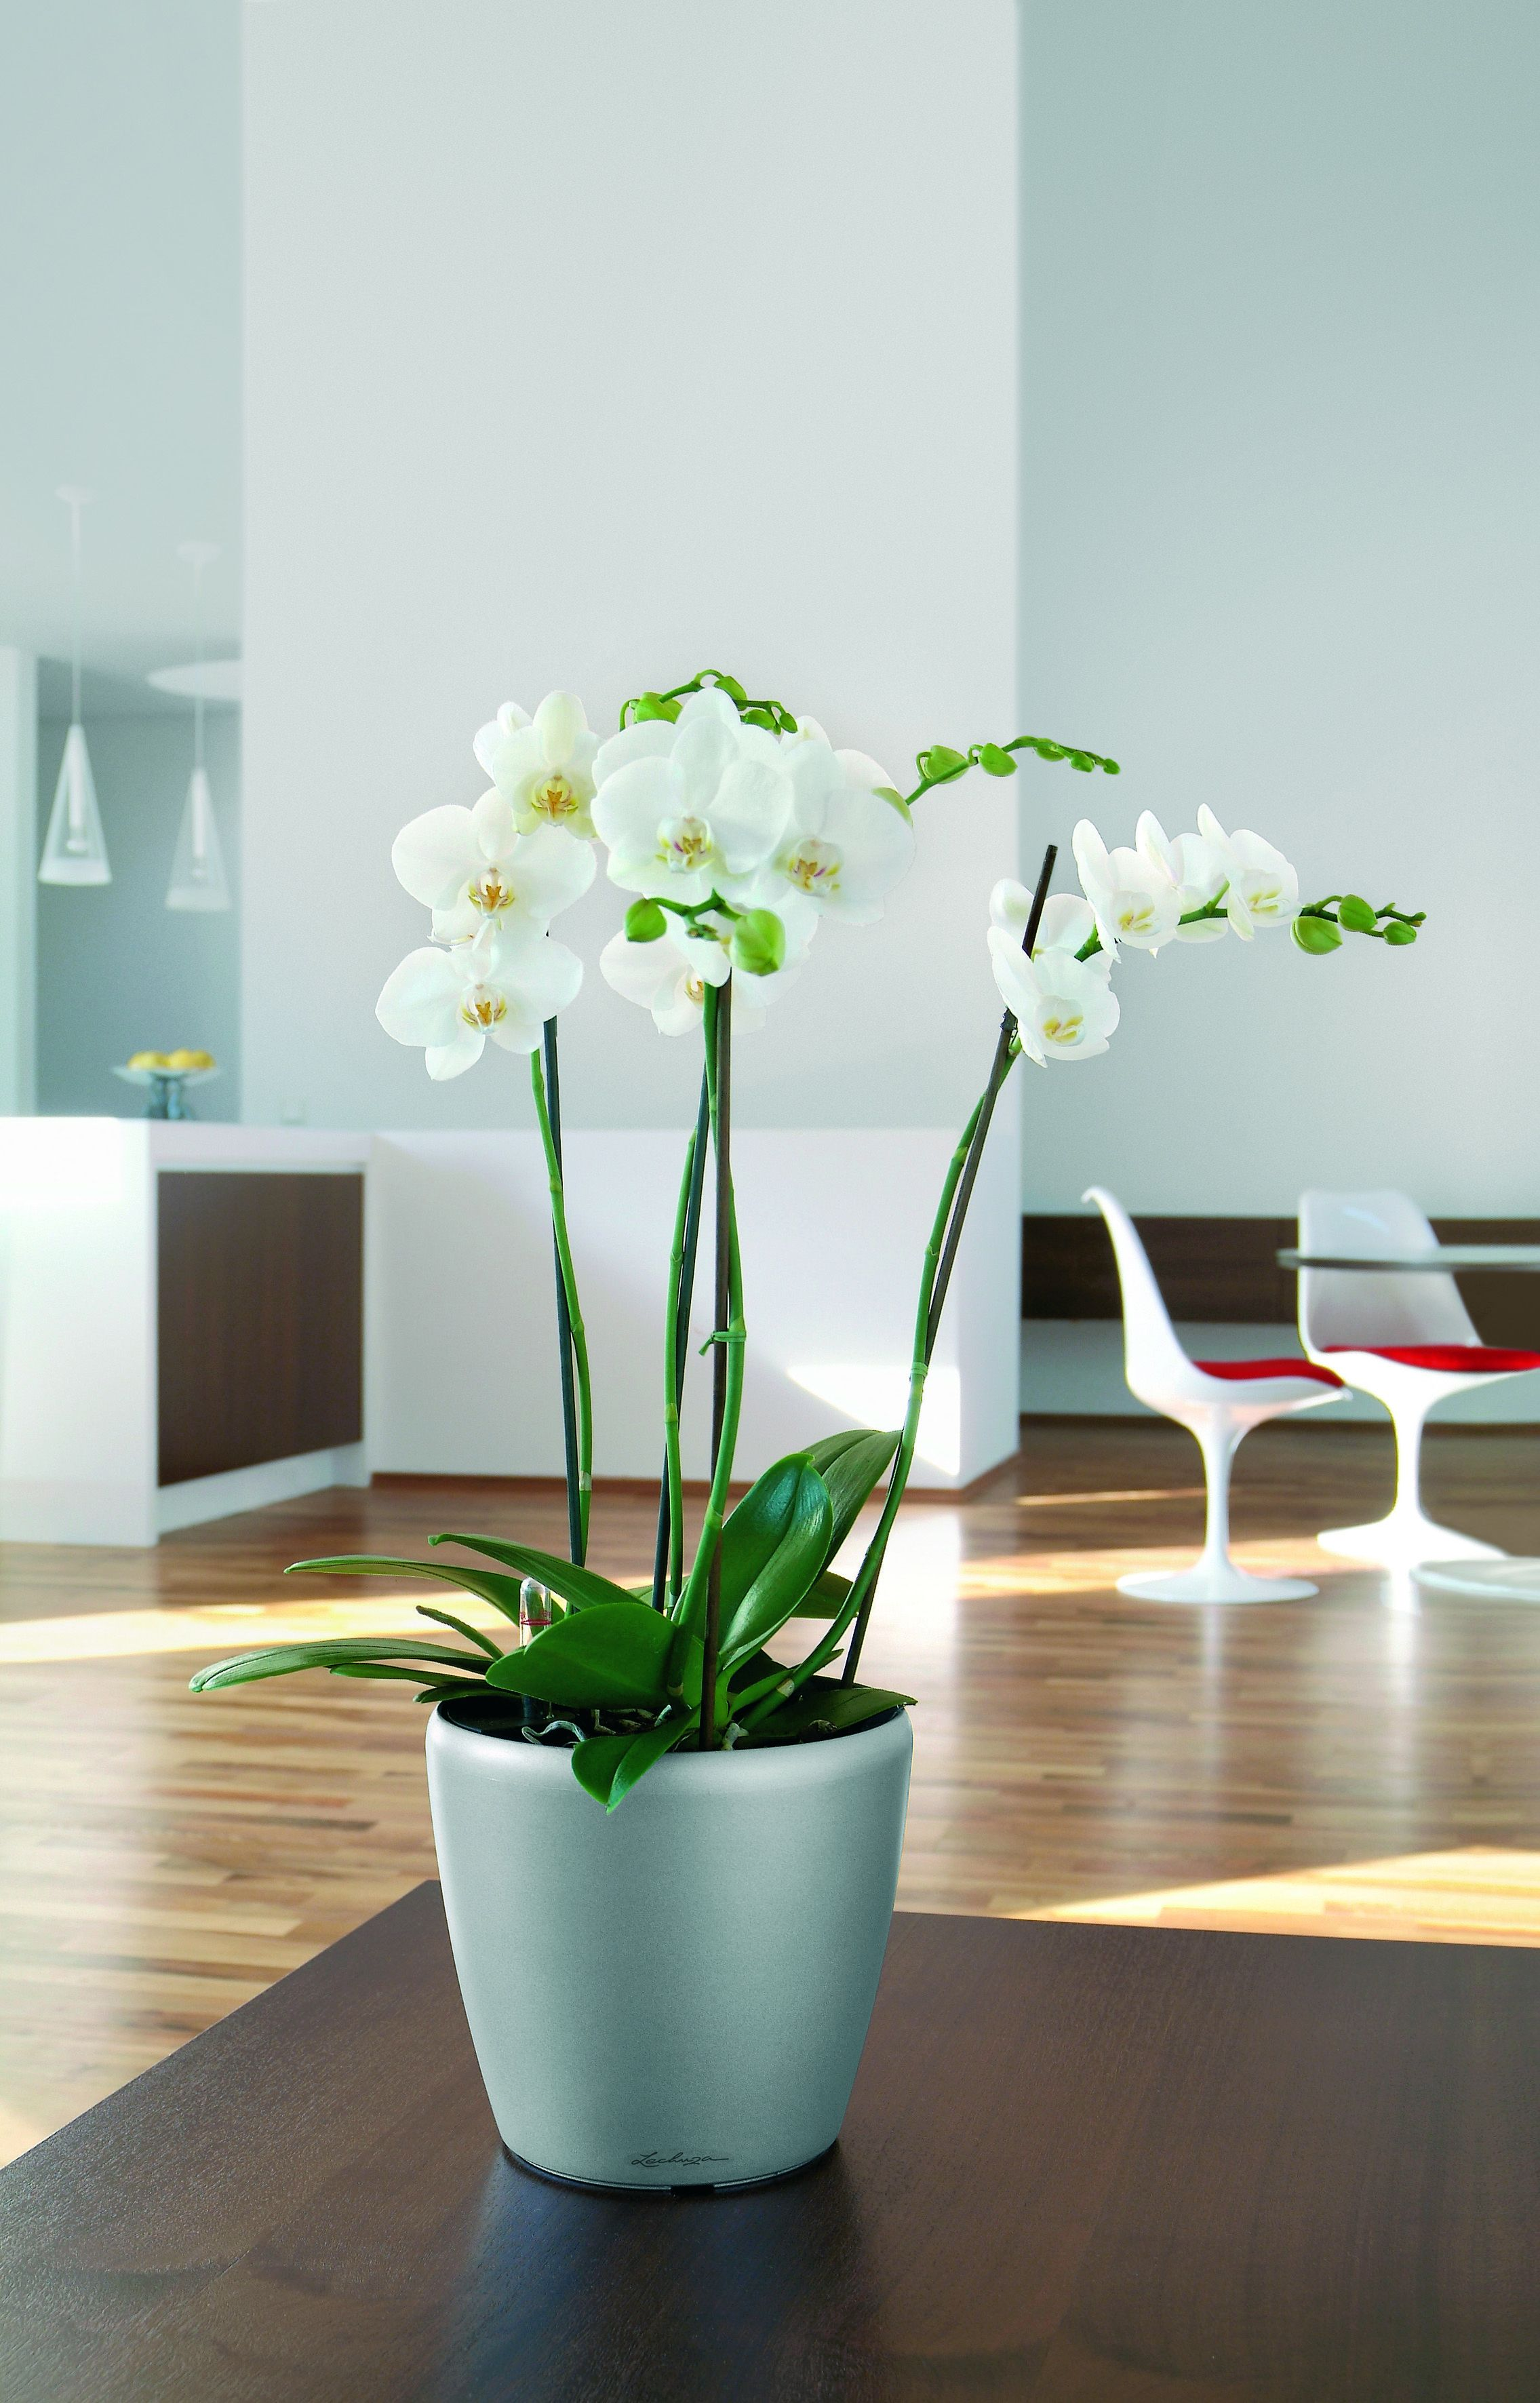 Classico 21 Silver tabletop with Orchids.jpg